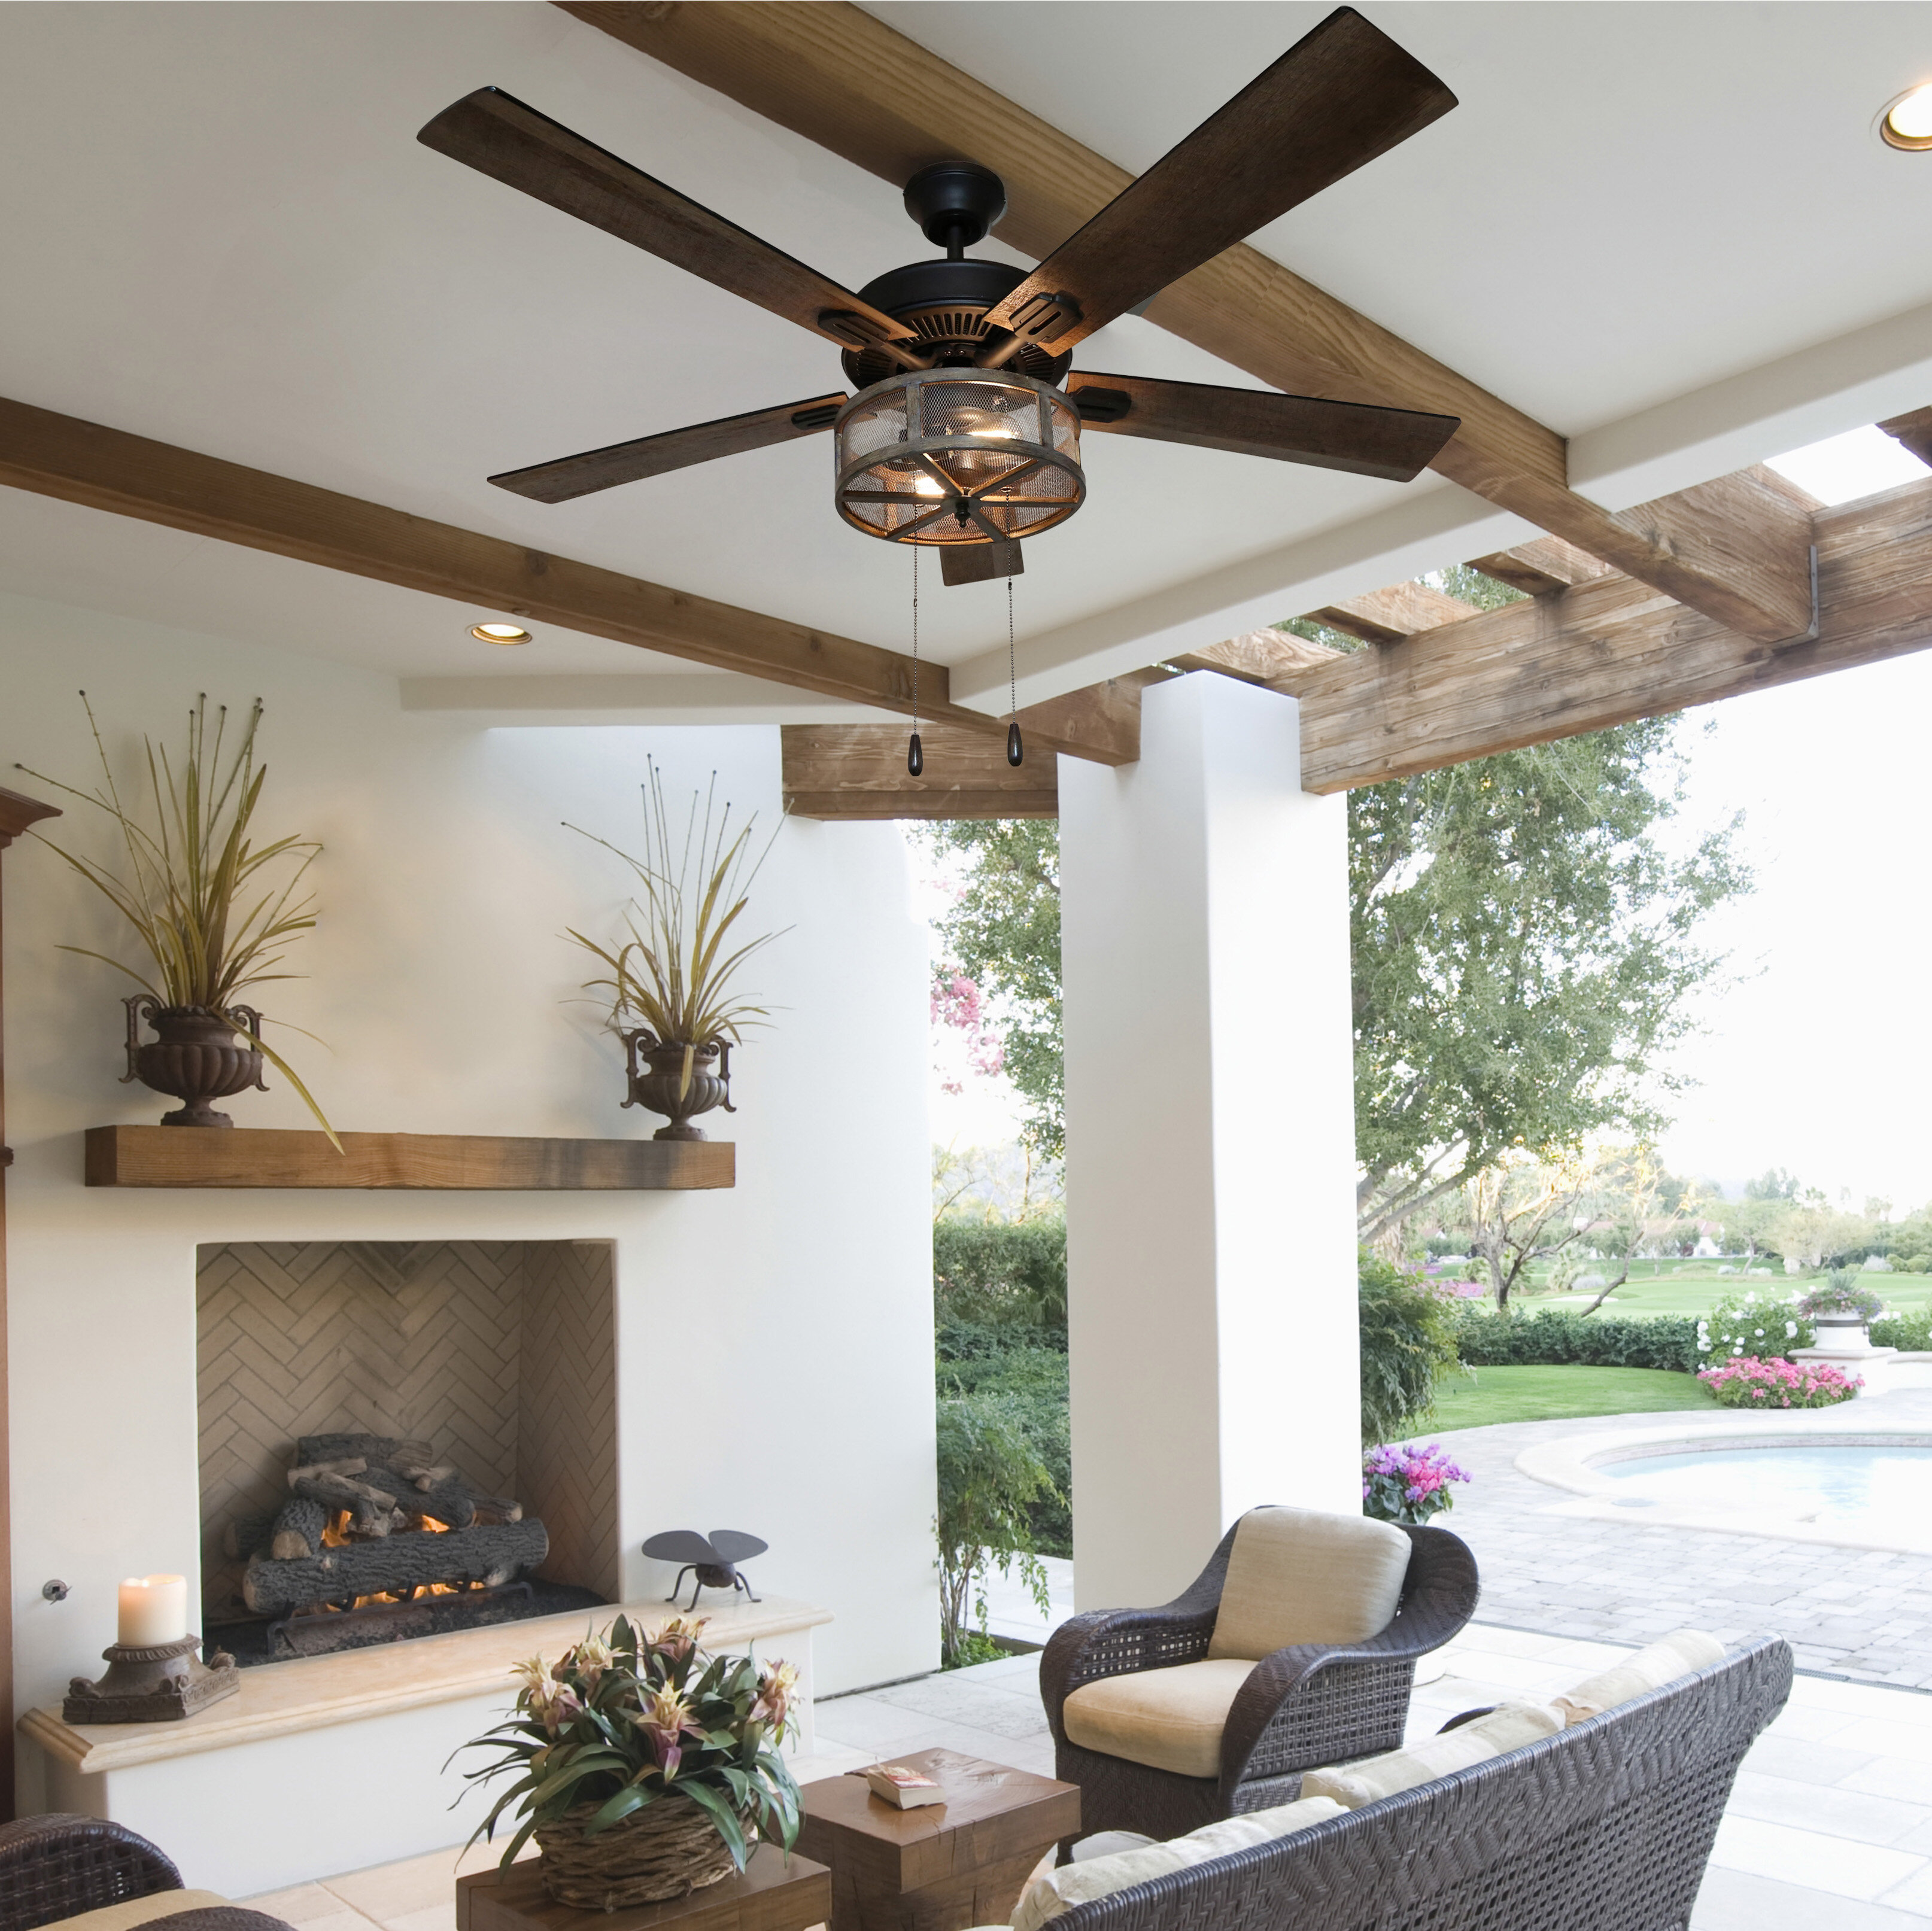 52 Abbigail Woodgrain Caged Farmhouse 5 Blade Ceiling Fan Light Kit Included Reviews Joss Main,Best Natural Mosquito Repellent For Yard